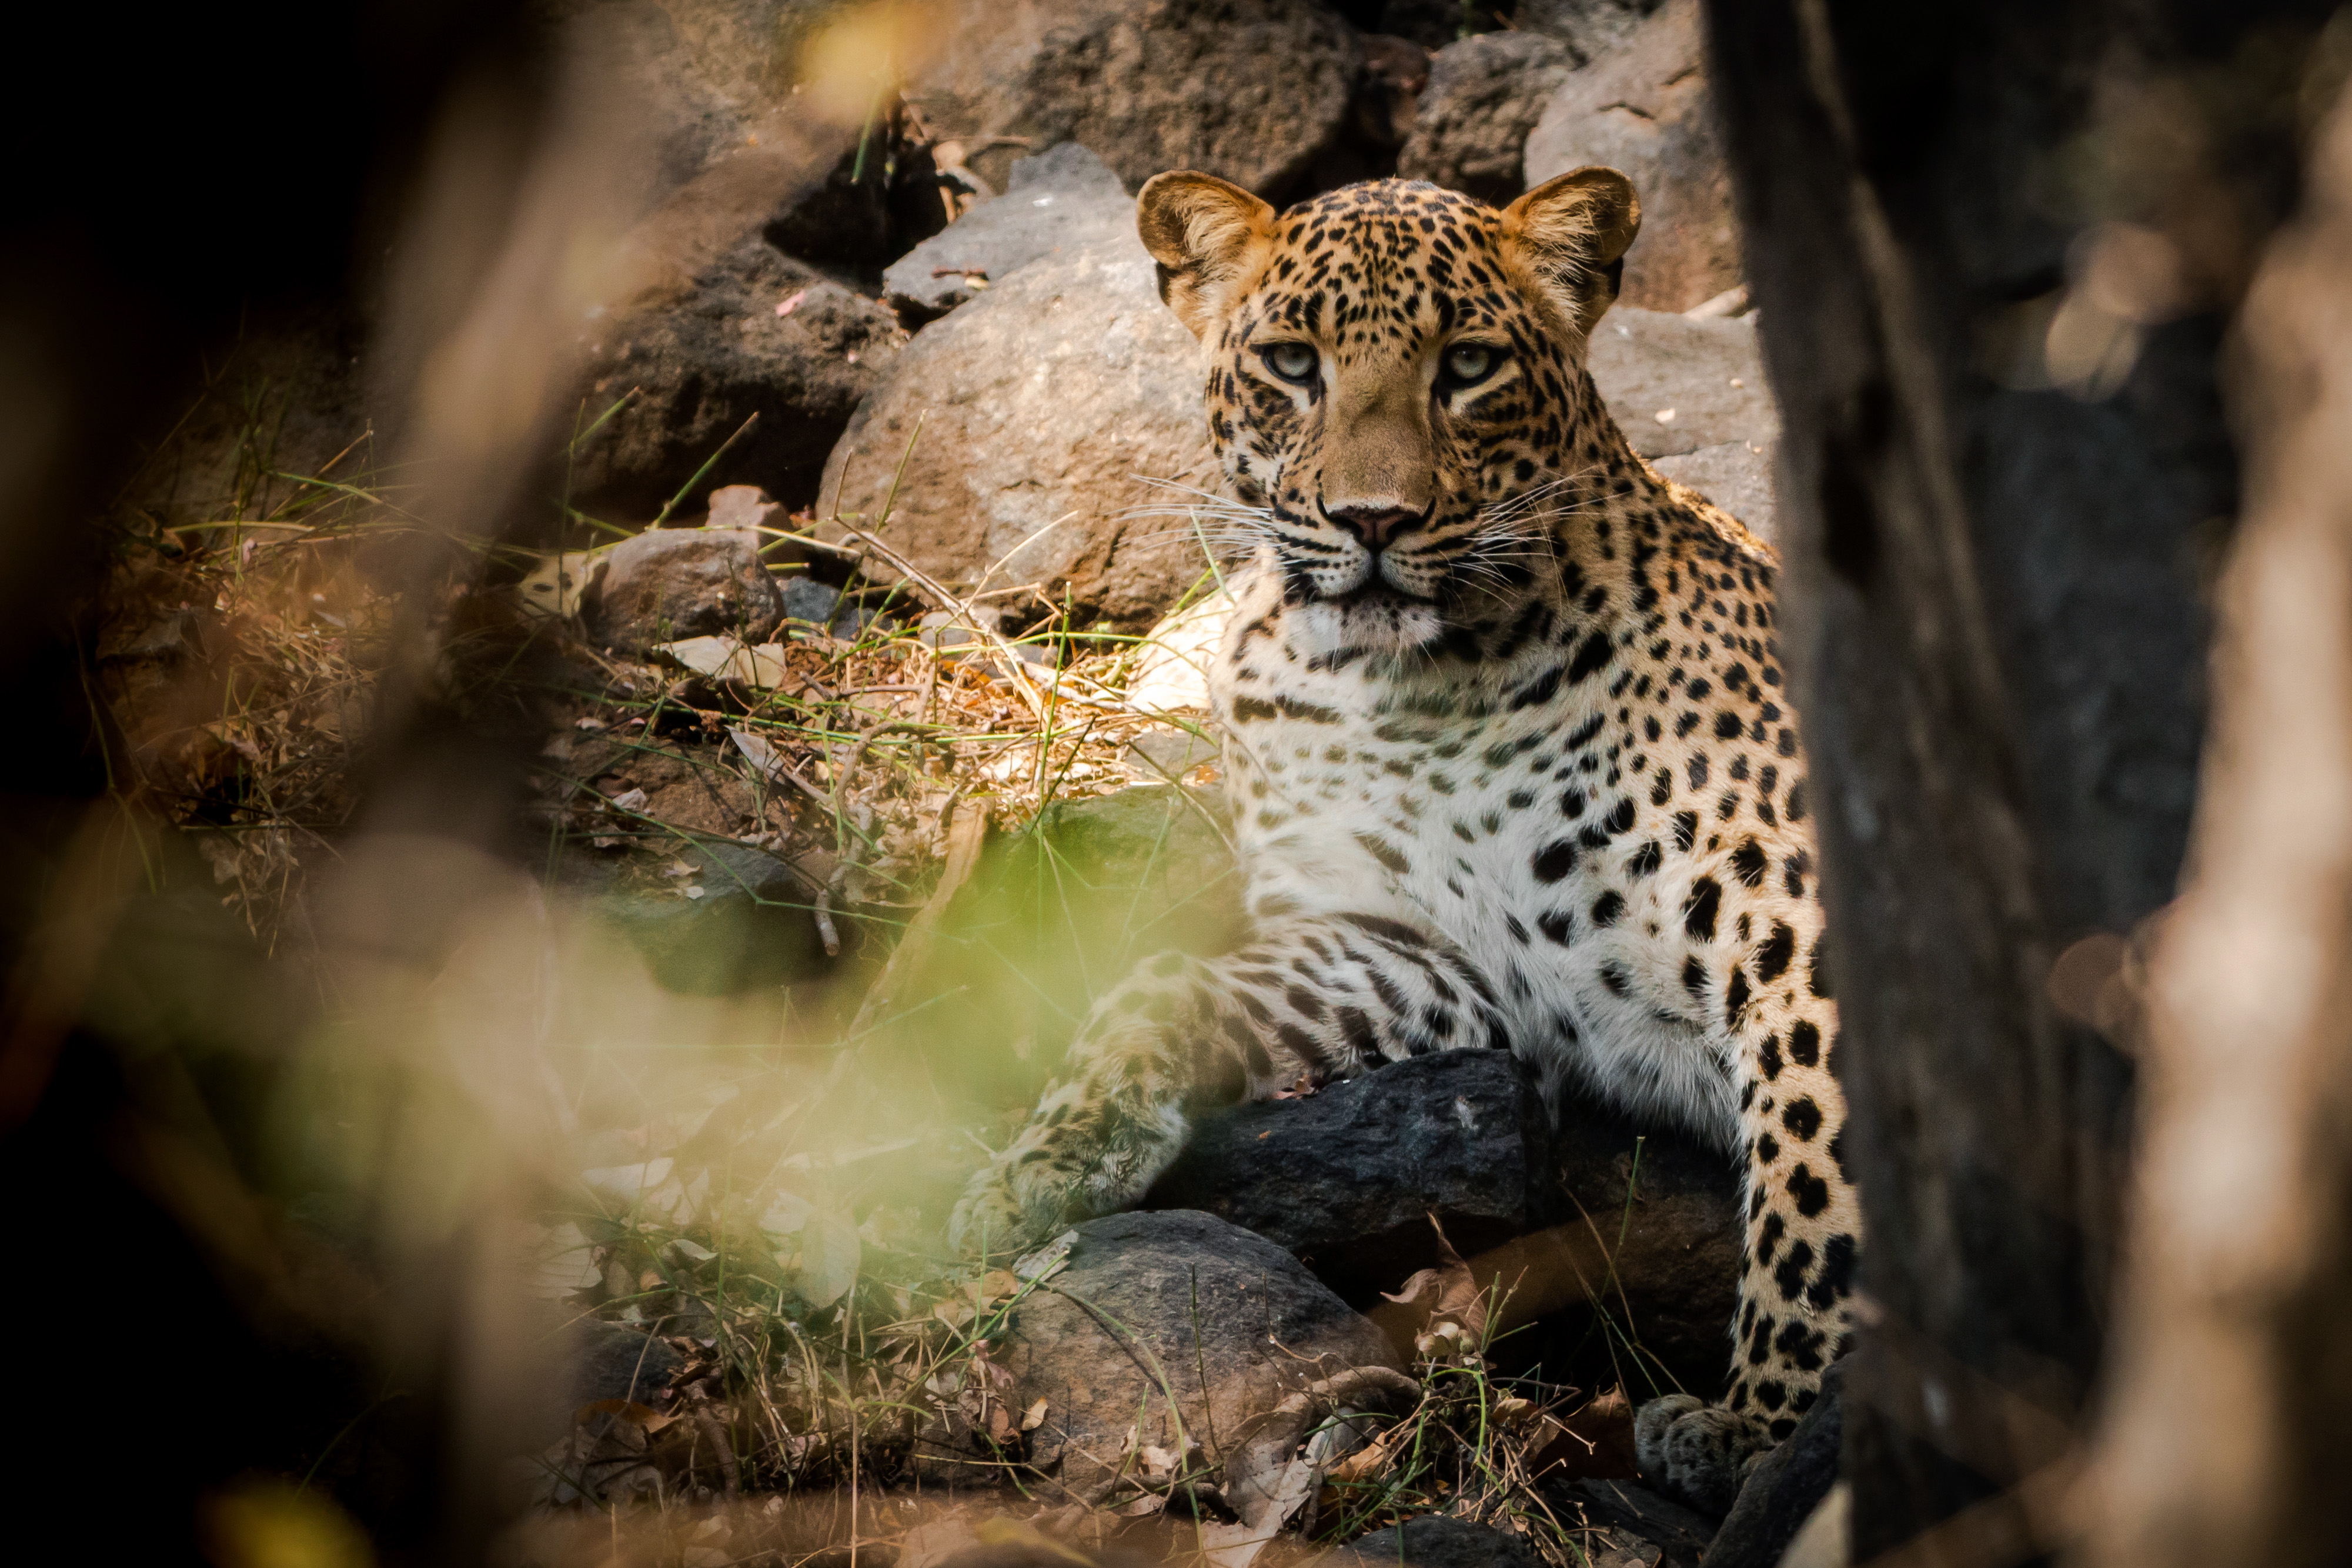 A bold male leopard, rests in the shade in Ranthambhore National Park. Leopards are usually shy, and disappear the moment they hear a vehicle, but this one stayed put, posing for the camera